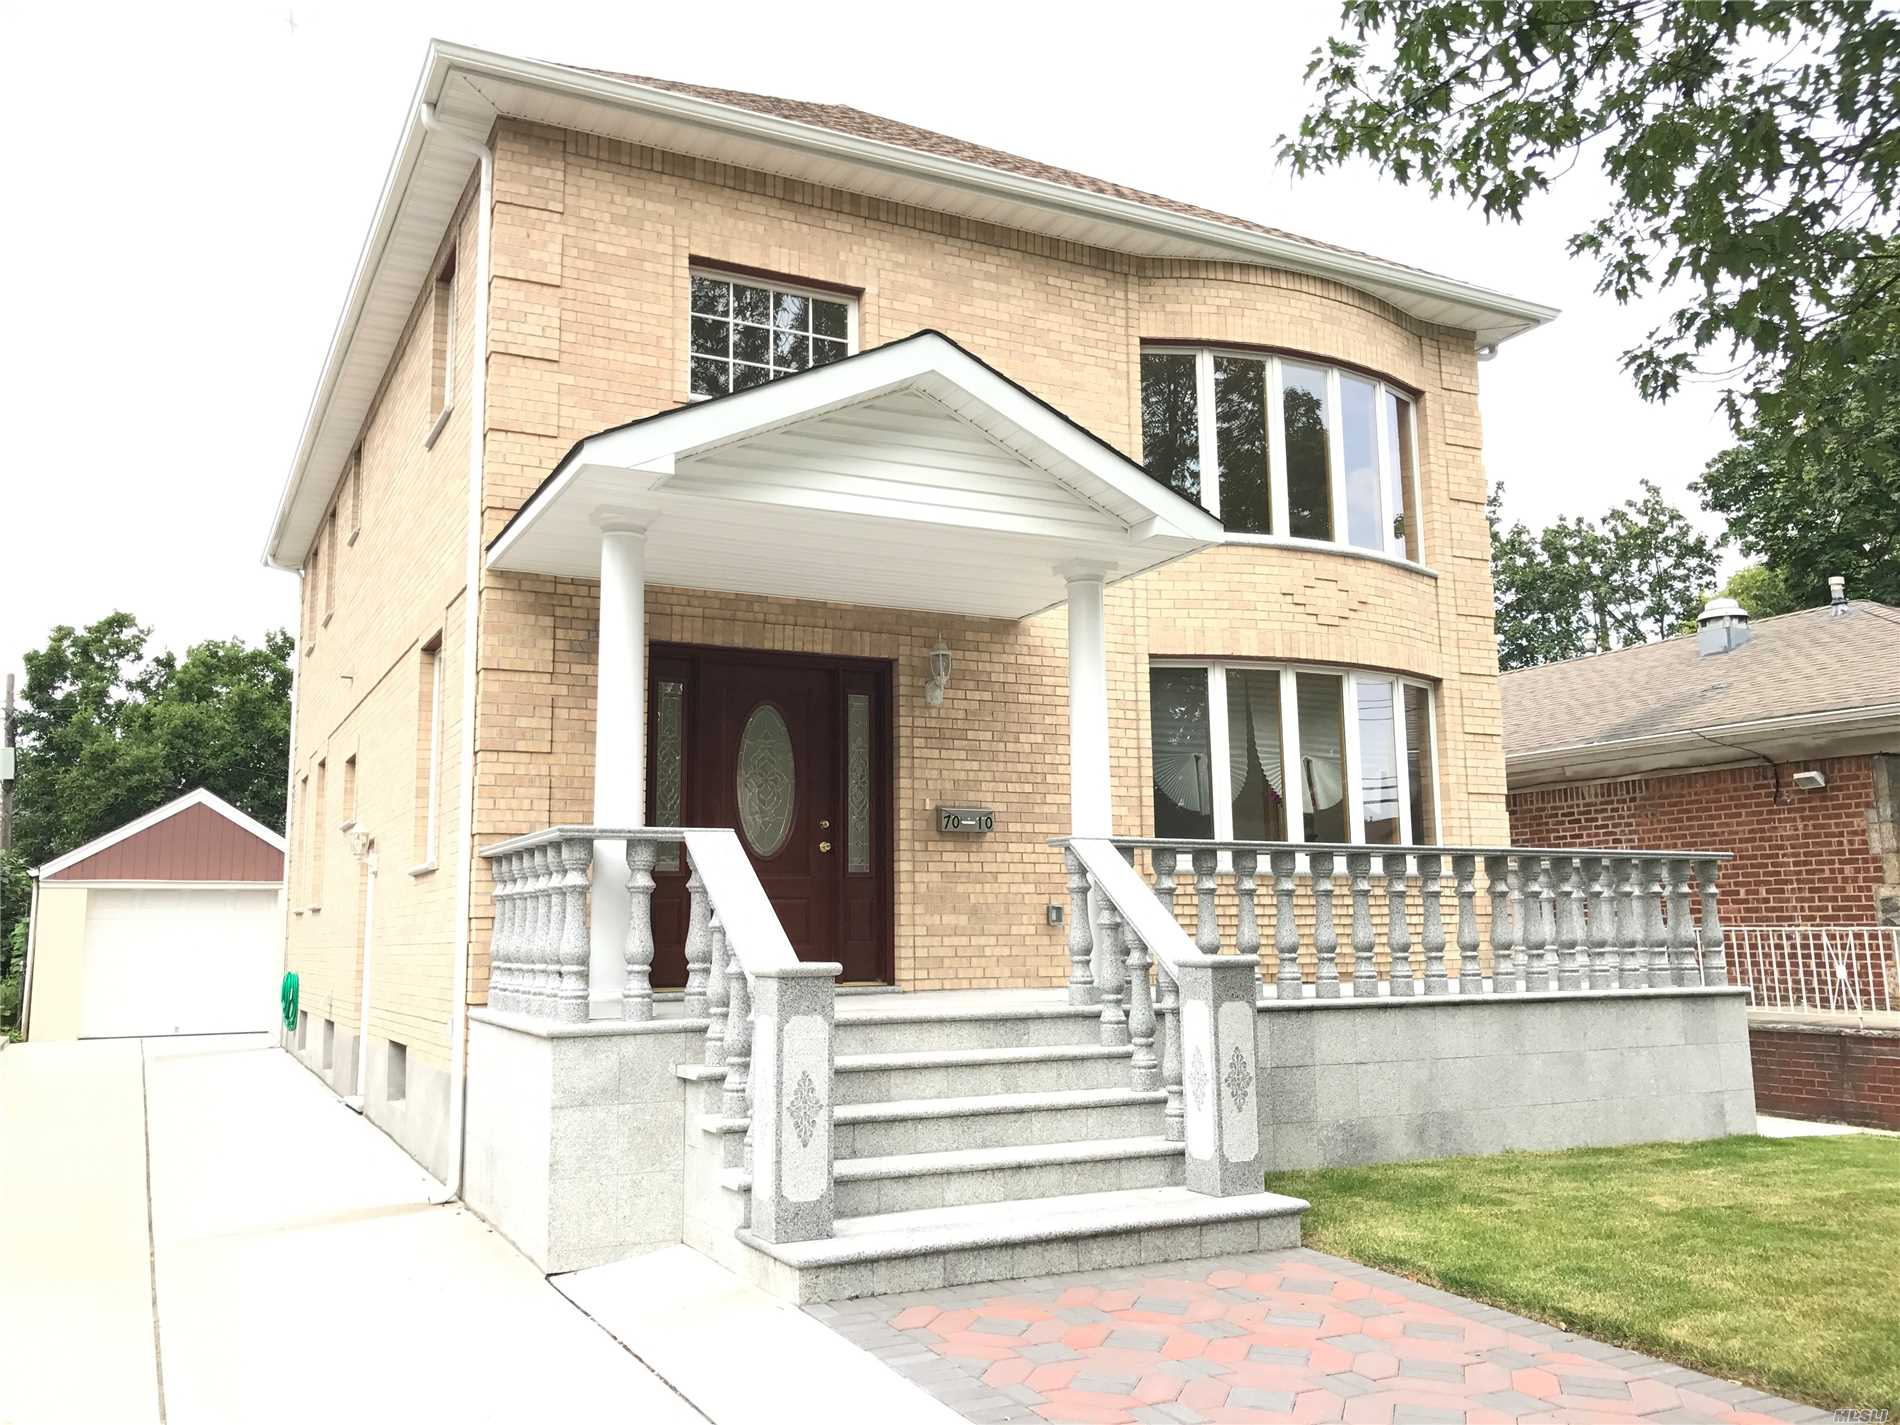 Beautiful Large Newly-Built 5 Bedrooms 4 Baths Colonial. Cathedral High-Ceiling Living Room. Custom Built Kitchen. Excellent School District #26. Walk-To Ps 173, Jhs 216 And Francis Lewis Hs. Close To Utopia Pkwy For Bus #30, #31 And #17.